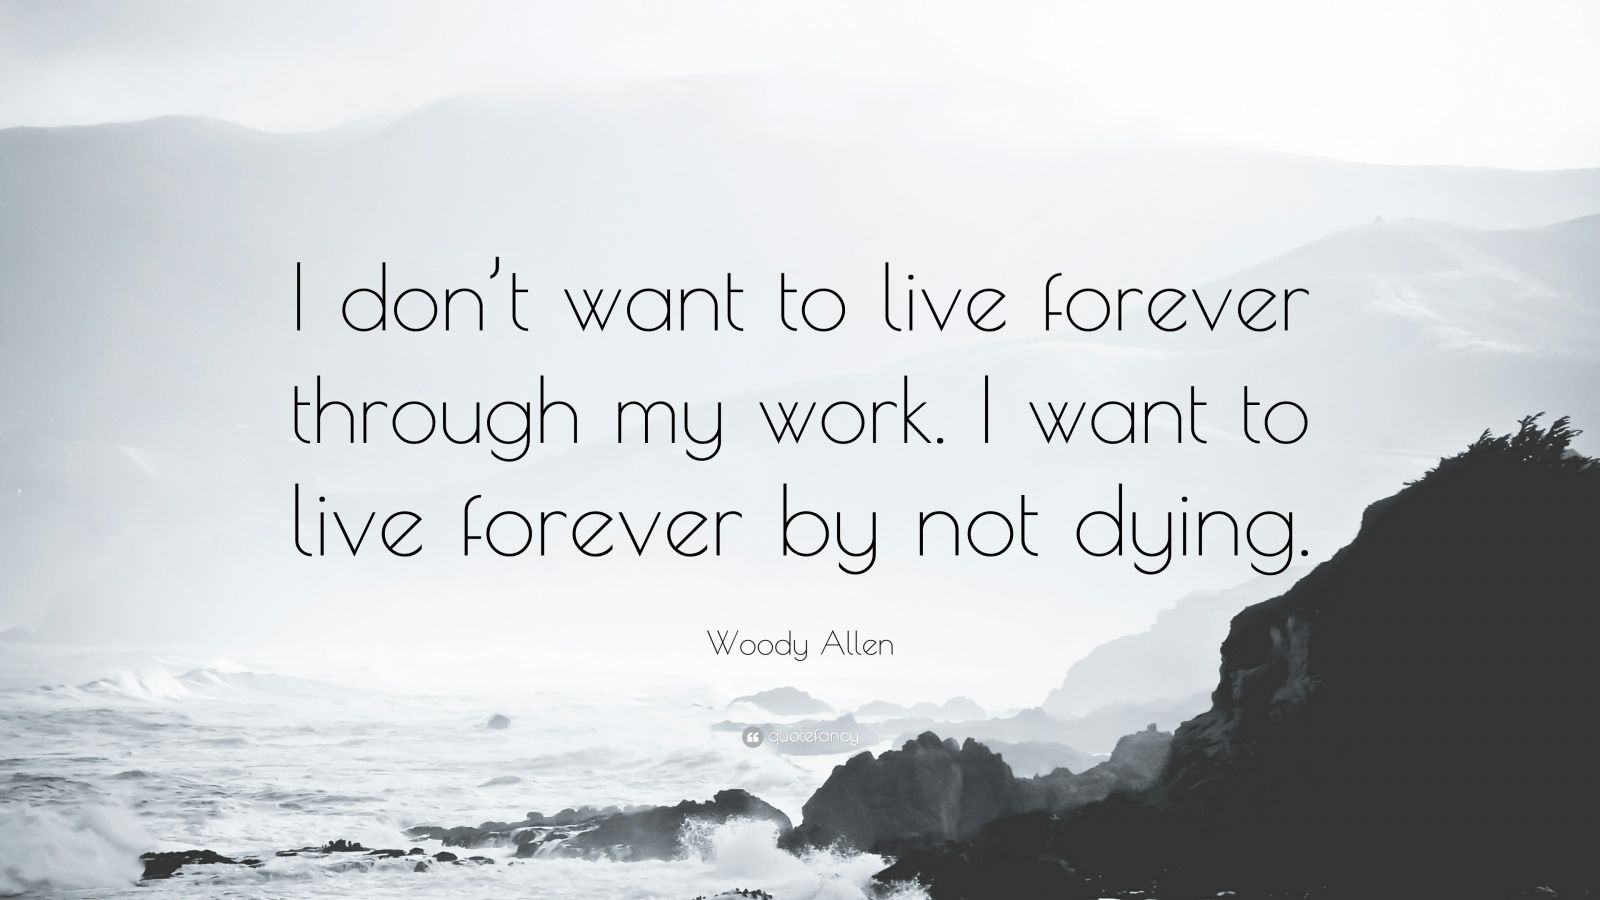 """Woody Allen Quote: """"I don't want to live forever through my work. I want to live forever by not dying."""""""